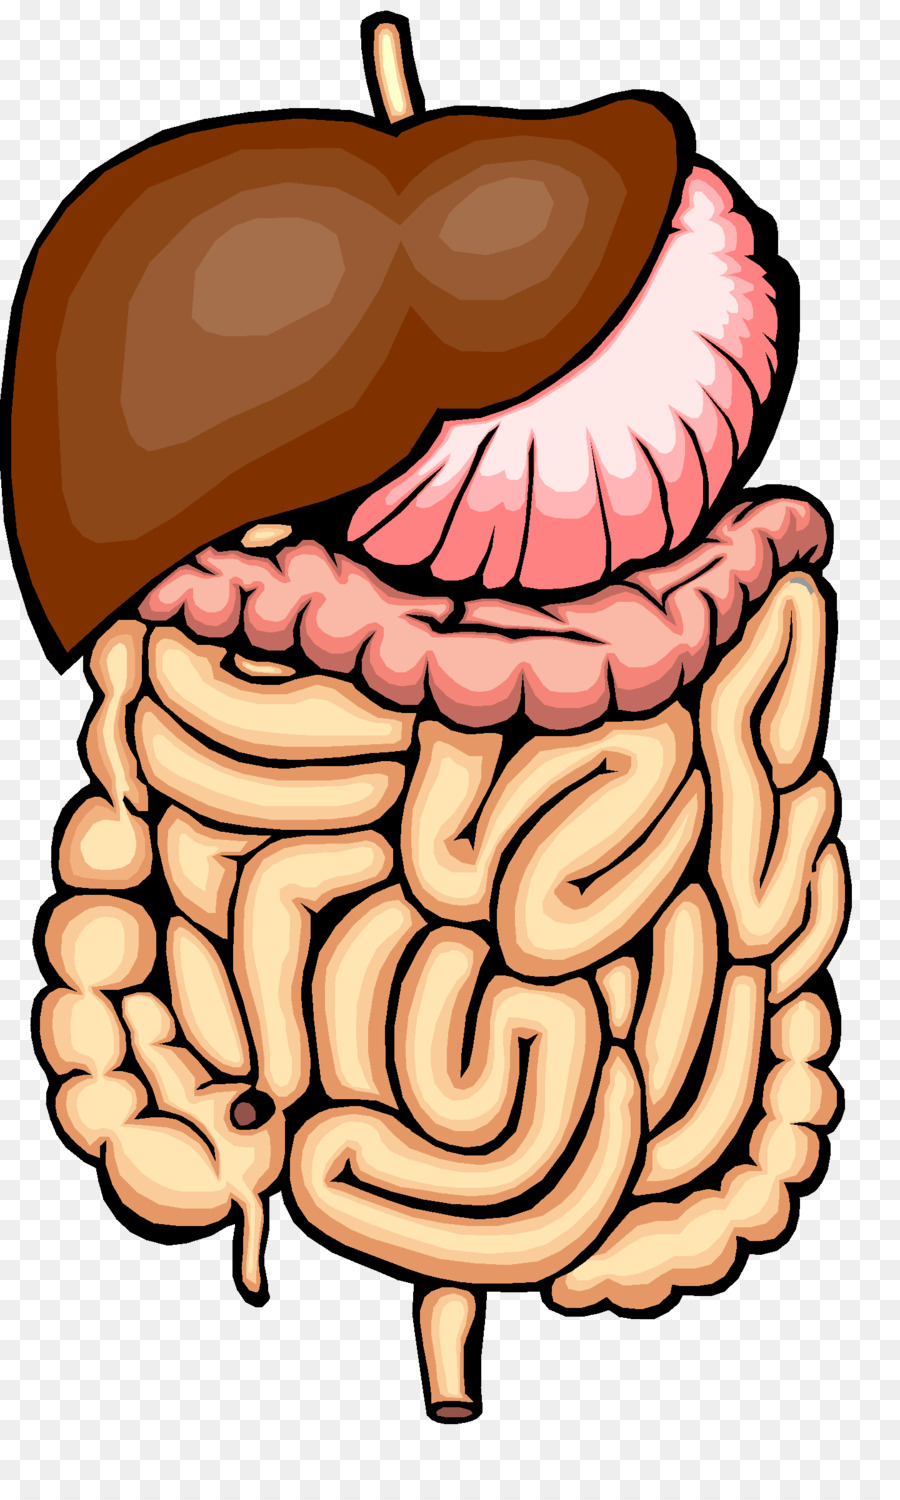 Digestion Physical Change Human Digestive System Chemical Change